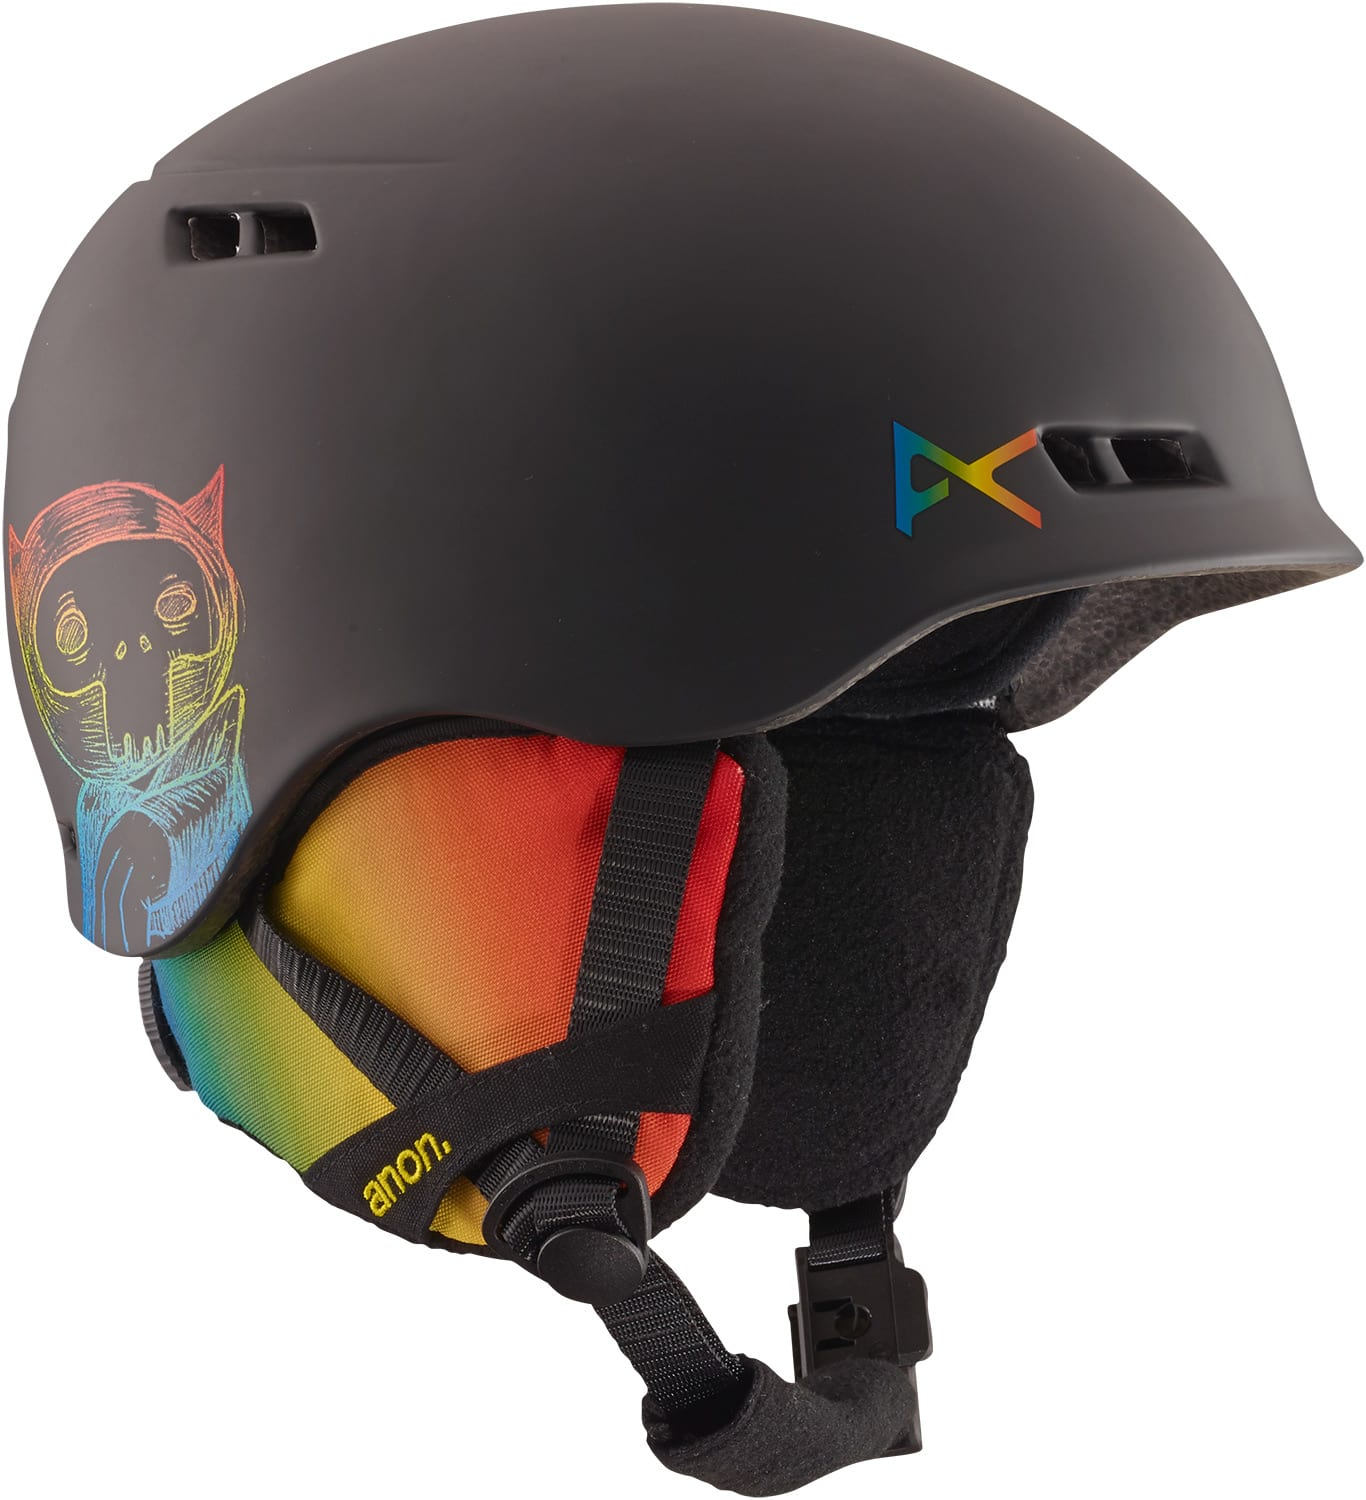 Ski Helmet Sale >> On Sale Anon Burner Snow Helmet - Kids, Youth up to 45% off